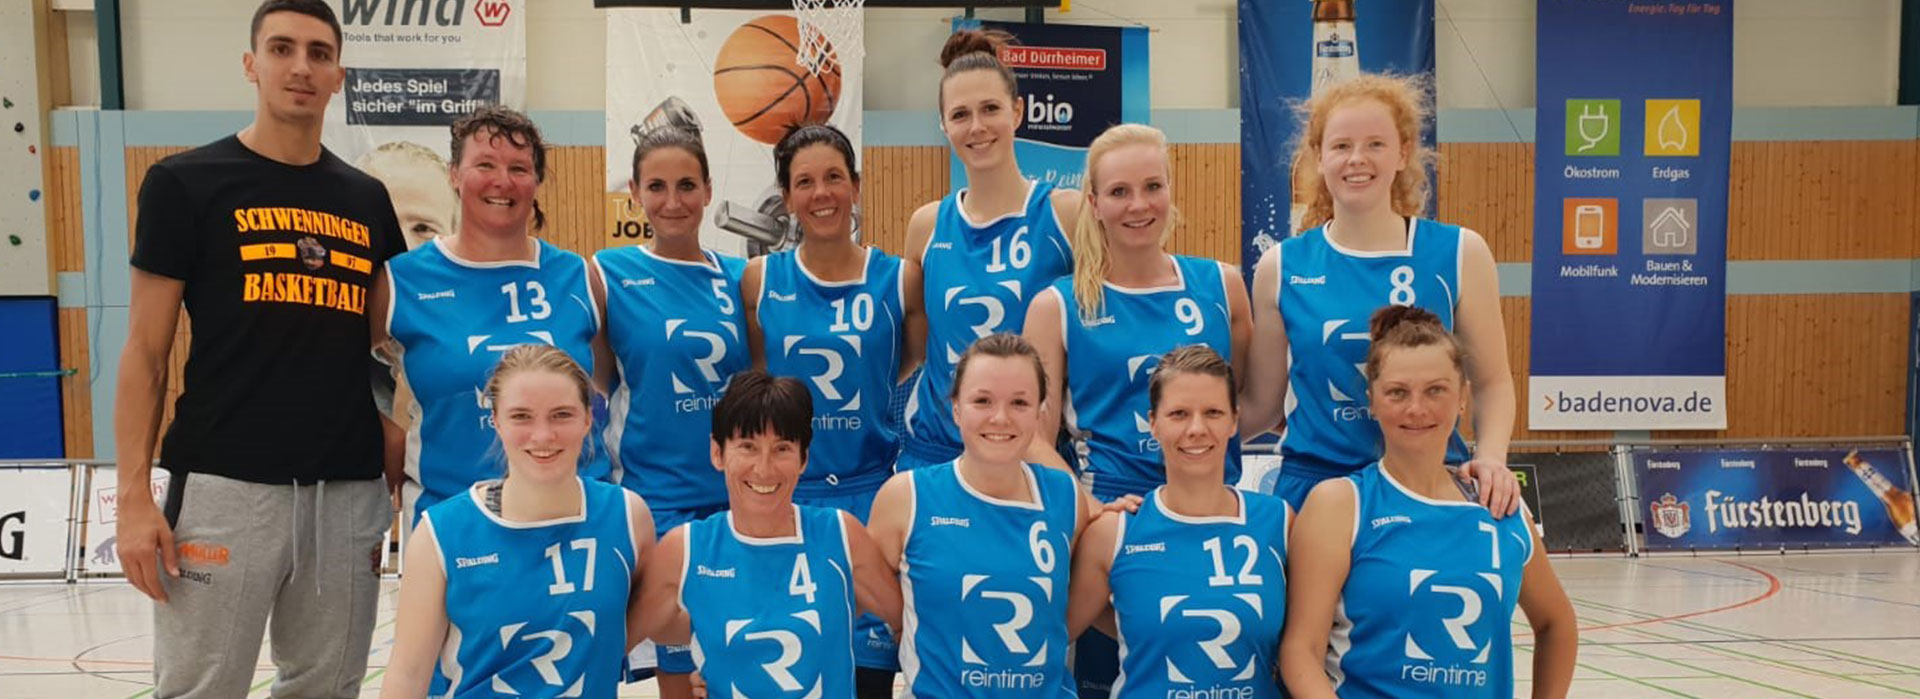 Damen Mannschaft Wiha Panthers